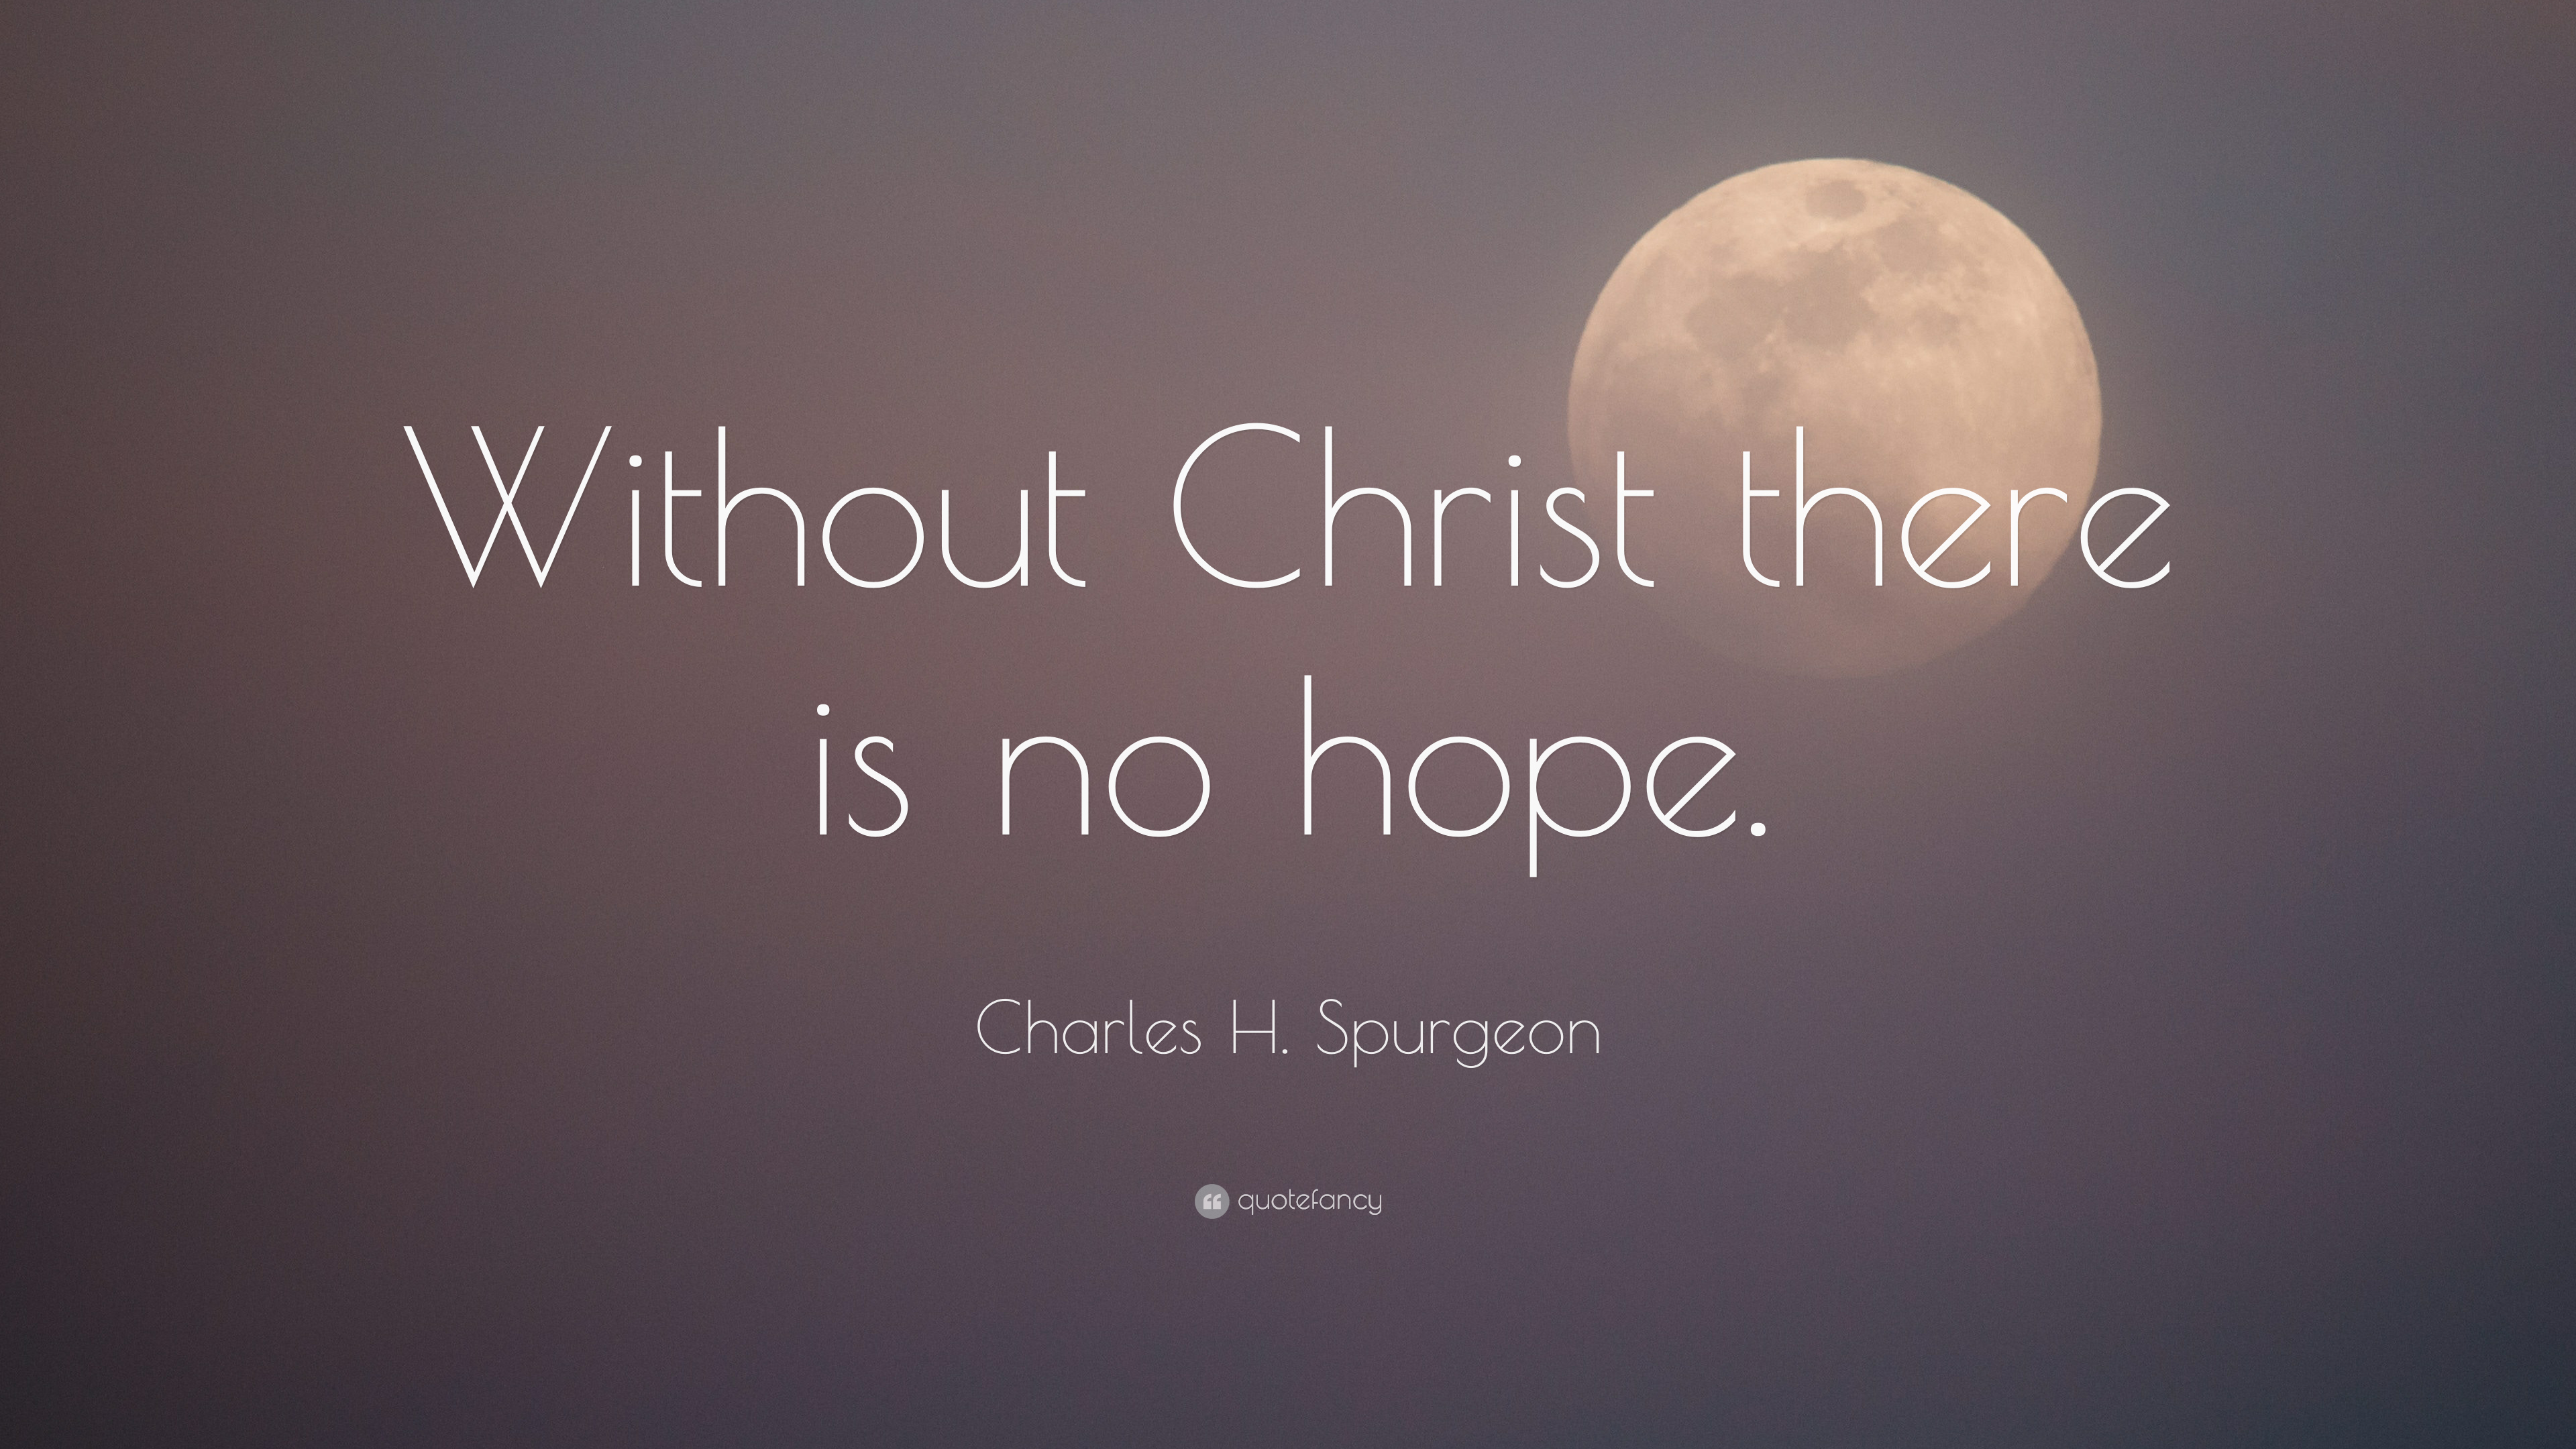 Nick Vujicic Quotes Wallpaper Charles H Spurgeon Quote Without Christ There Is No